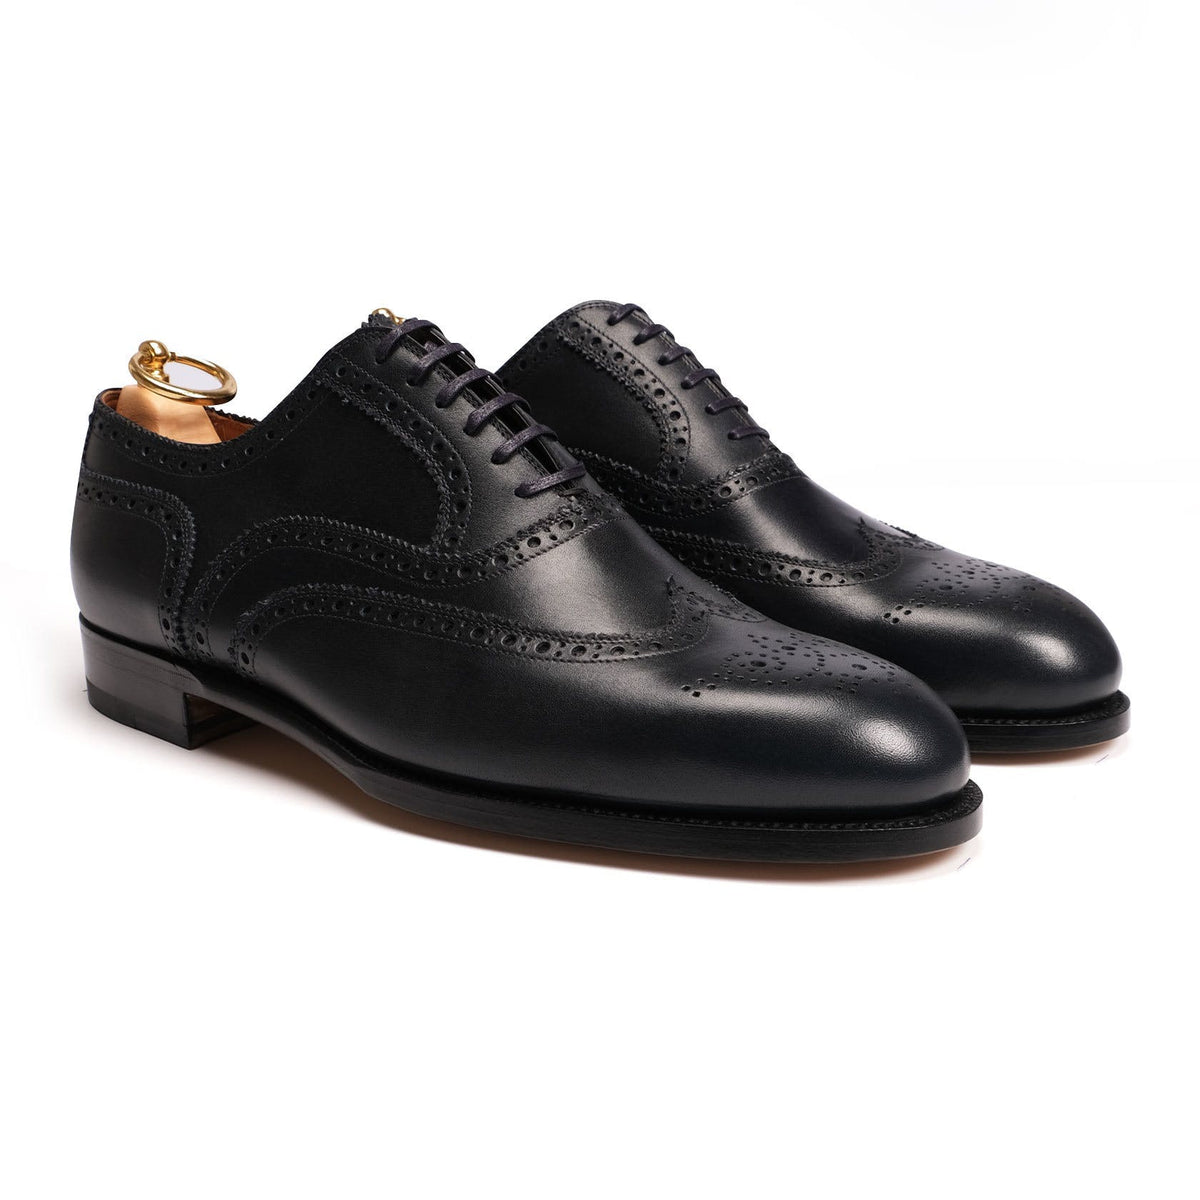 Rivolta 1883 Heritage 203 Oxford full-brogue with wing cap